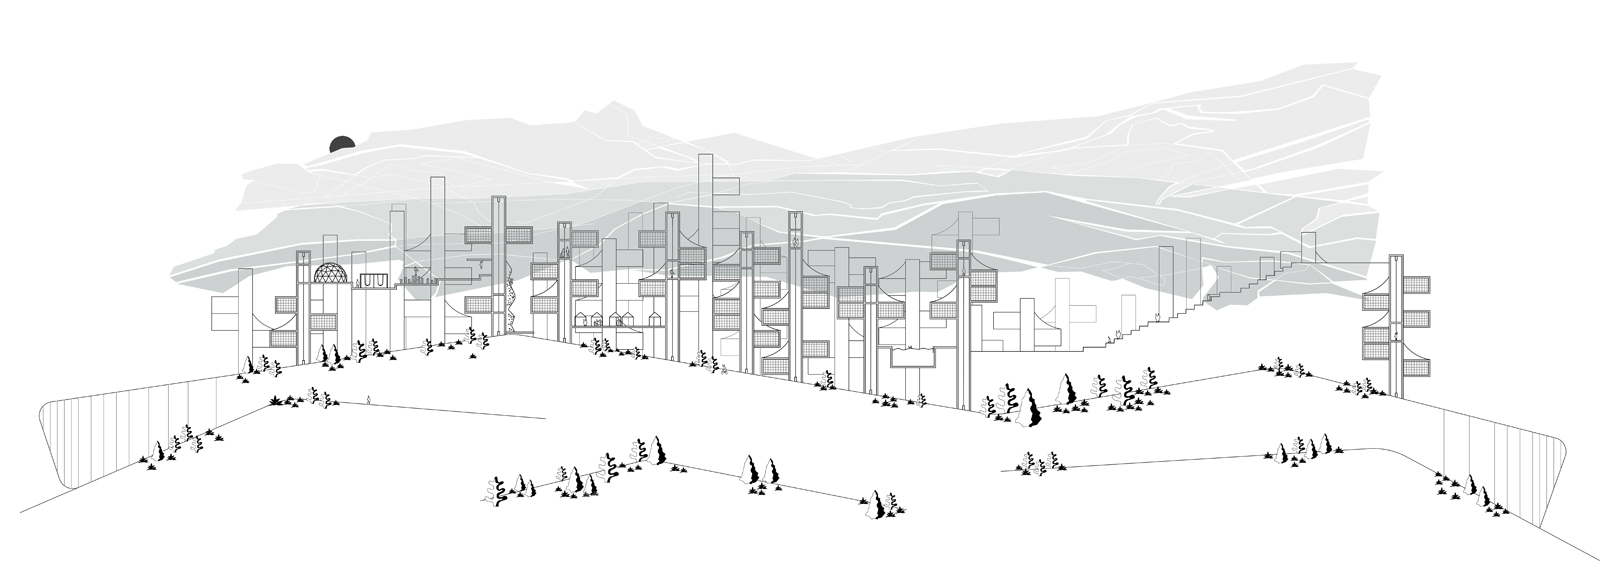 Urban section illustrating the layers of landscape, housing, and canopy cover for creating a new city by student Cecile Kim